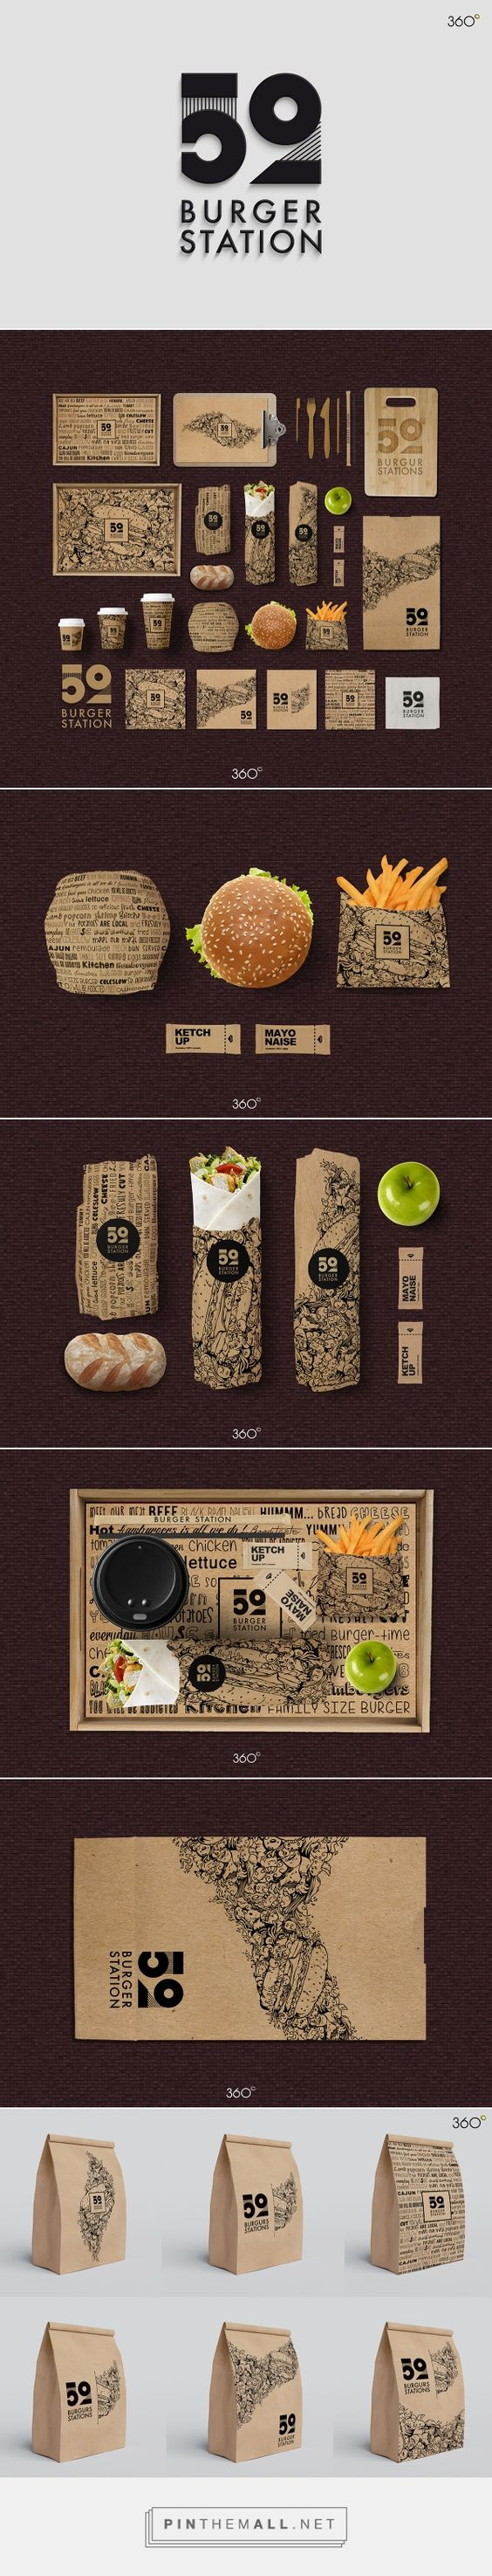 Burger Station on Behance by Fatma Zahra'a 360° Sfax صفاقس, Tunisia curated by Packaging Diva PD.  Tasty looking burger packaging.